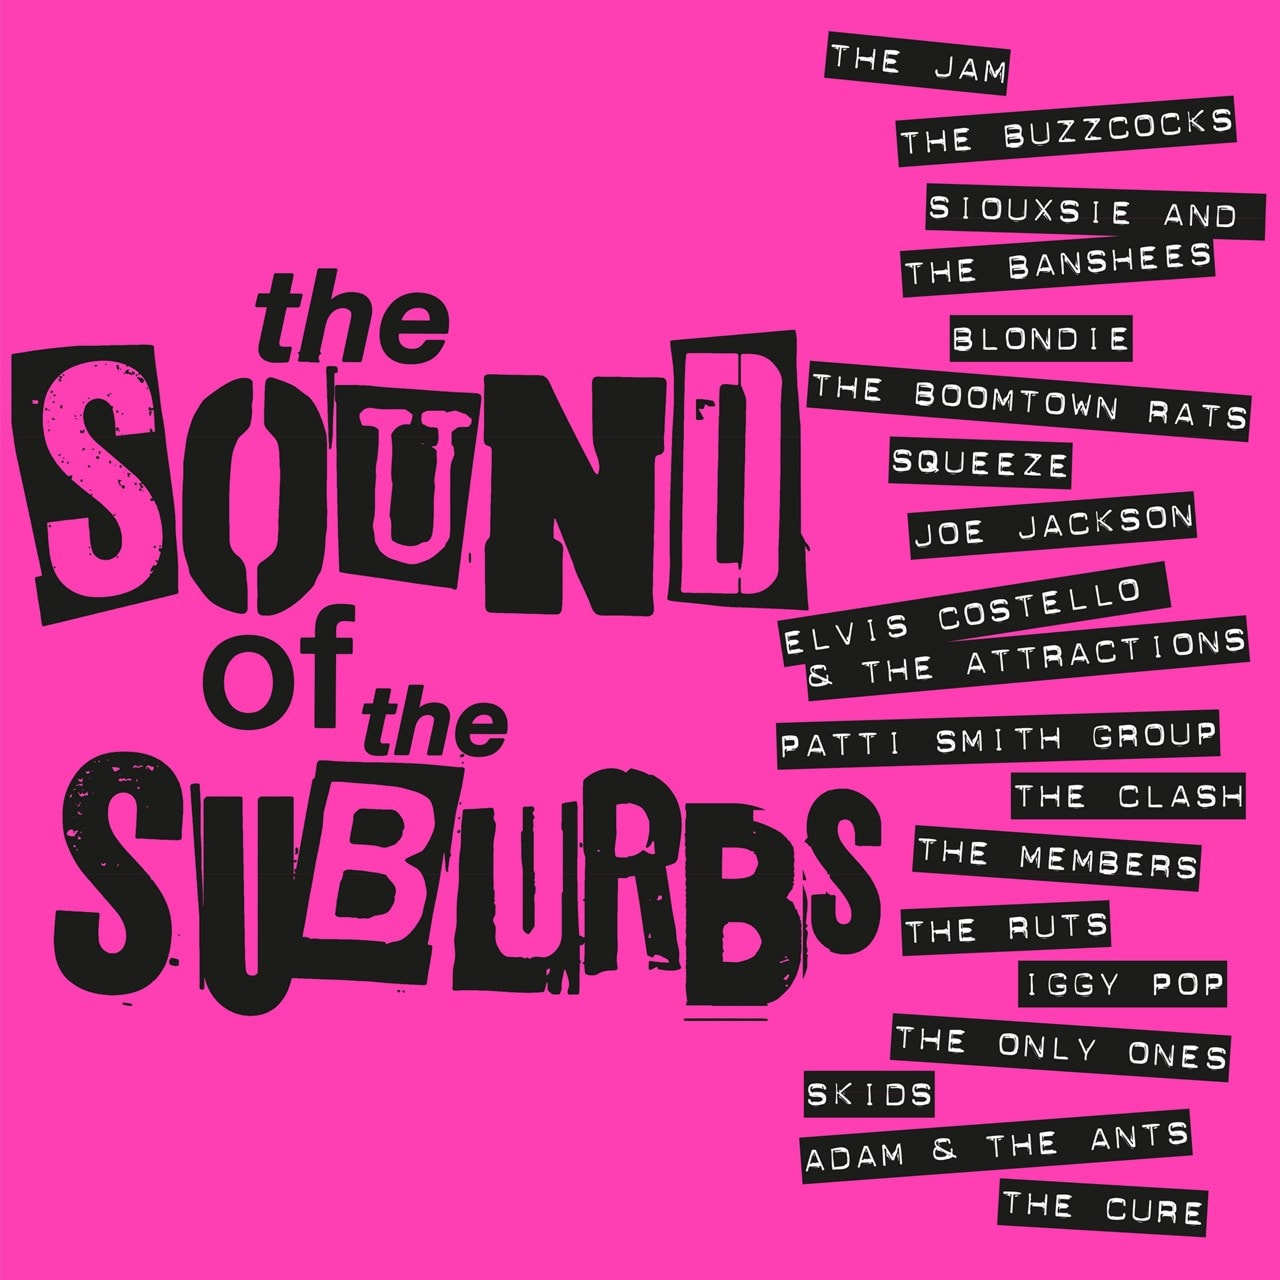 The Sound of the Suburbs - 1